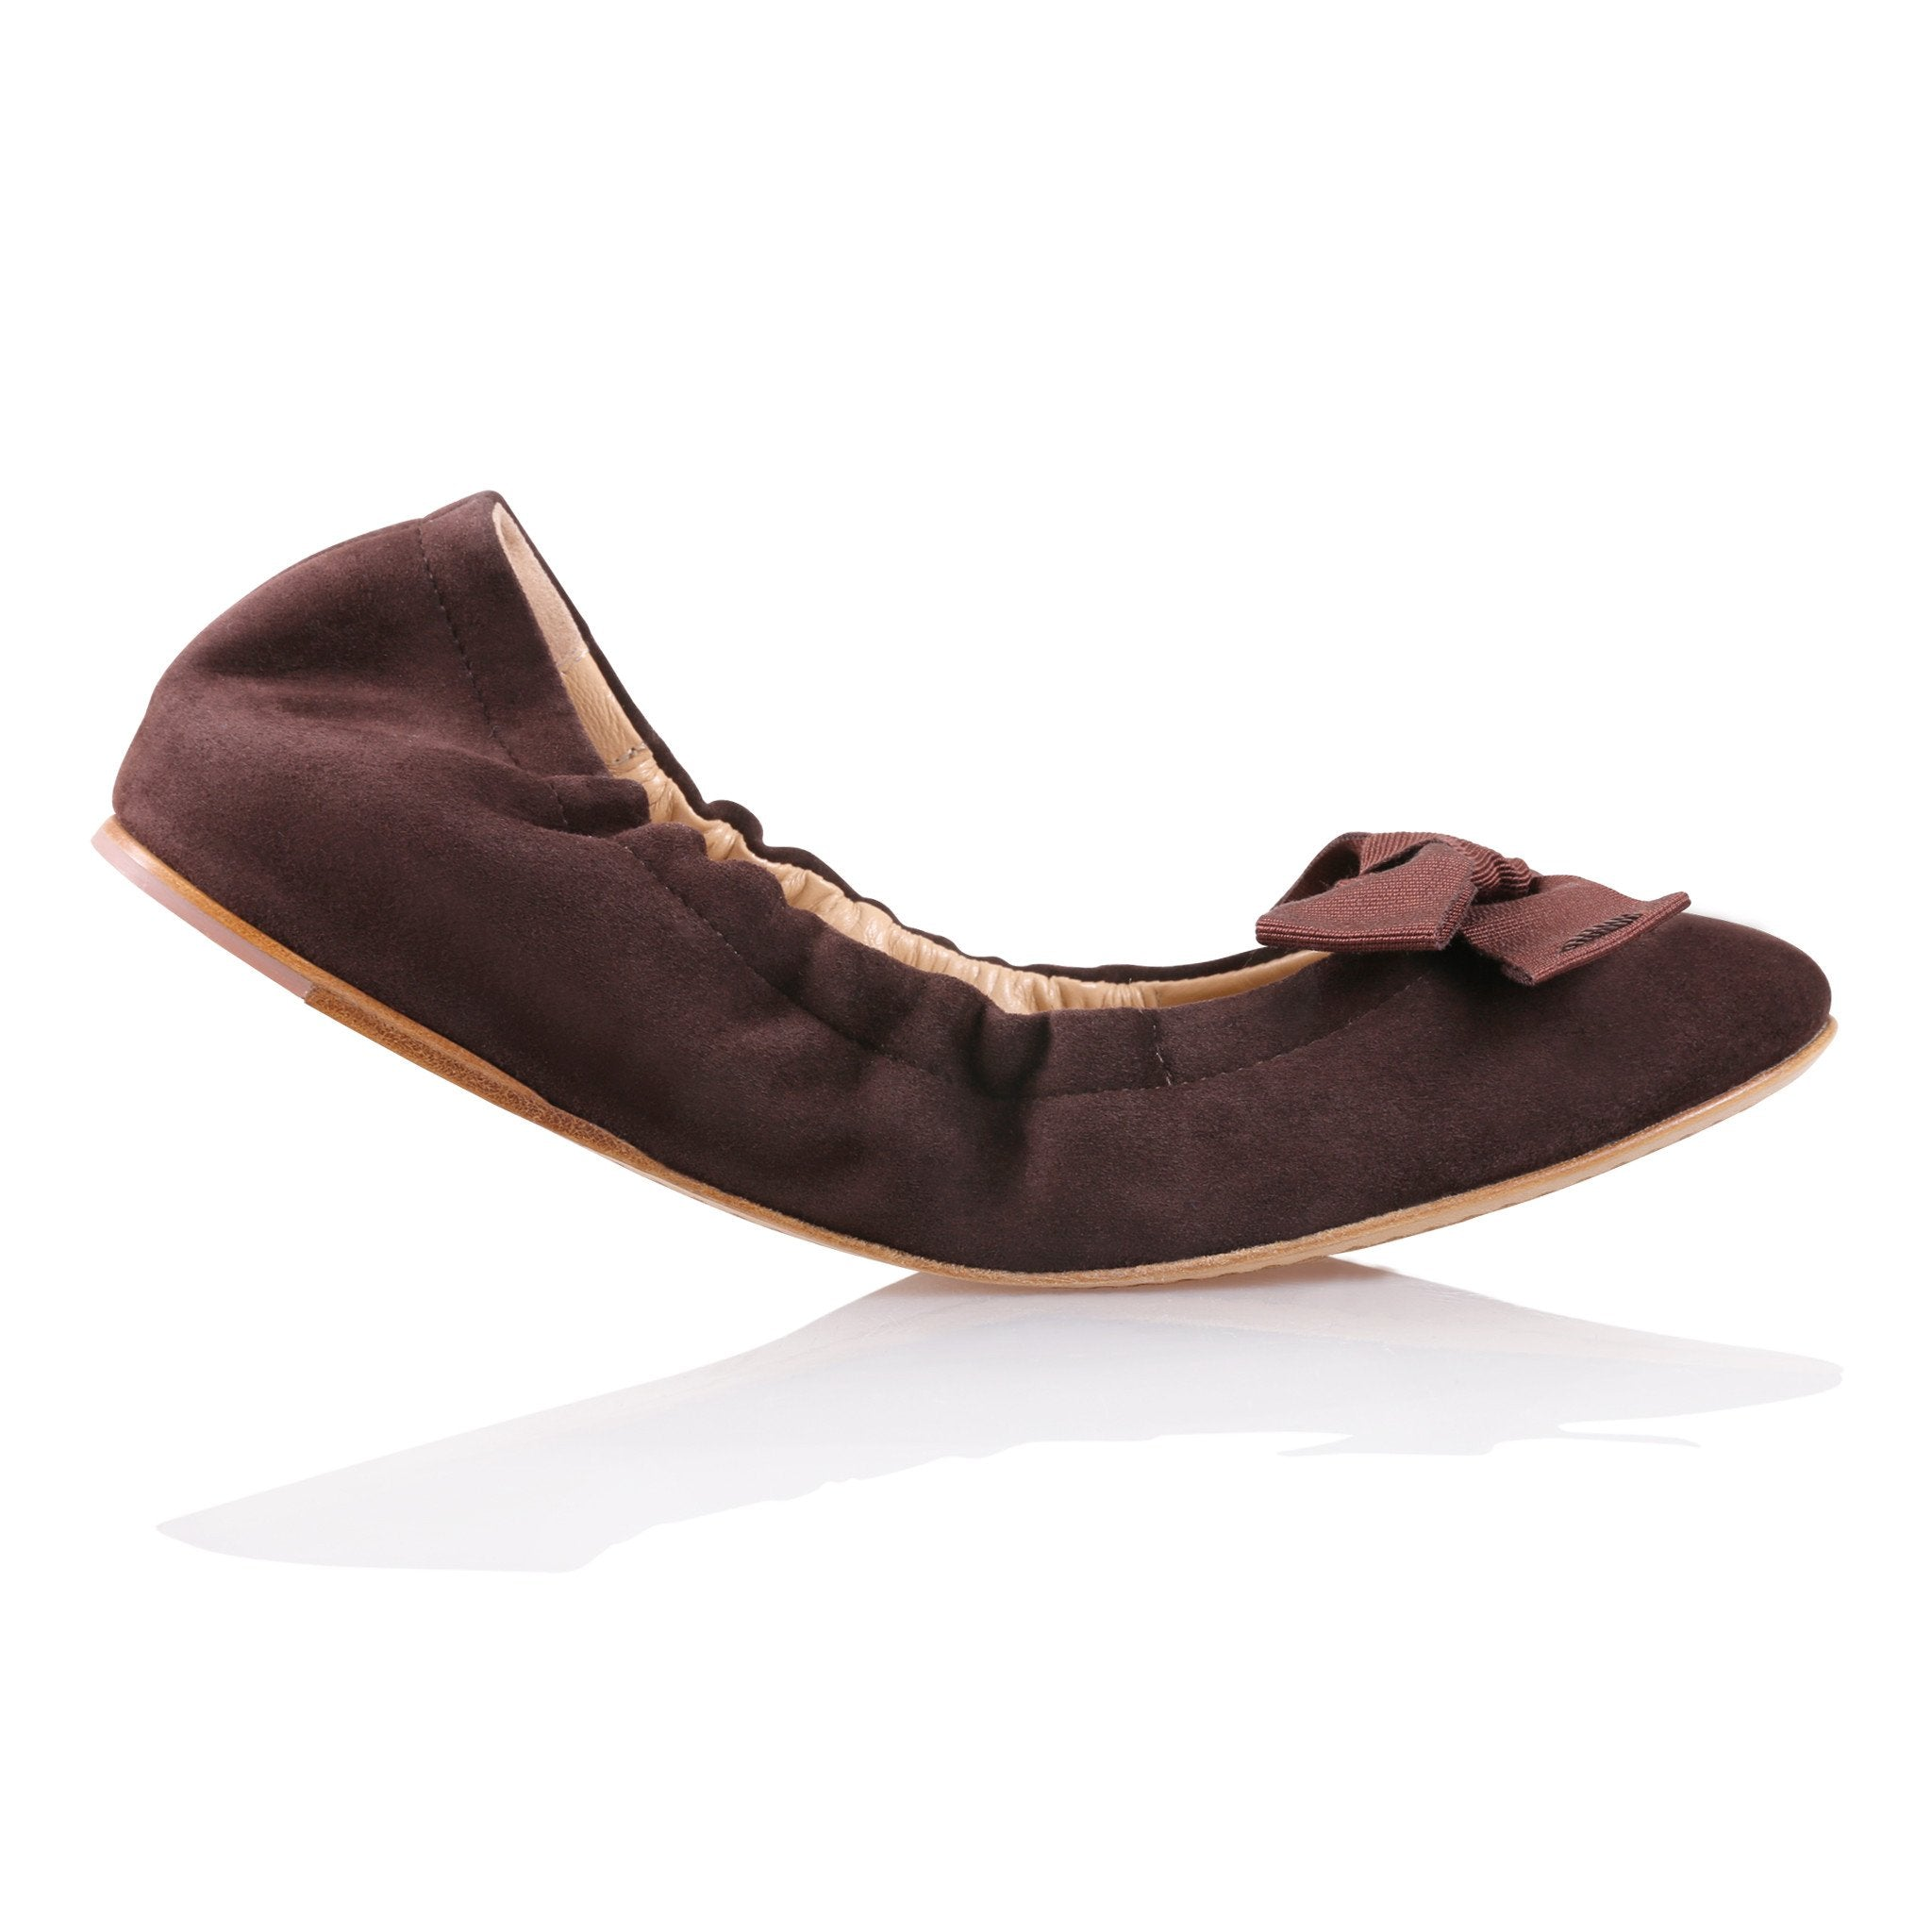 PORTOFINO - Velukid Espresso + Grosgrain Bow, VIAJIYU - Women's Hand Made Sustainable Luxury Shoes. Made in Italy. Made to Order.